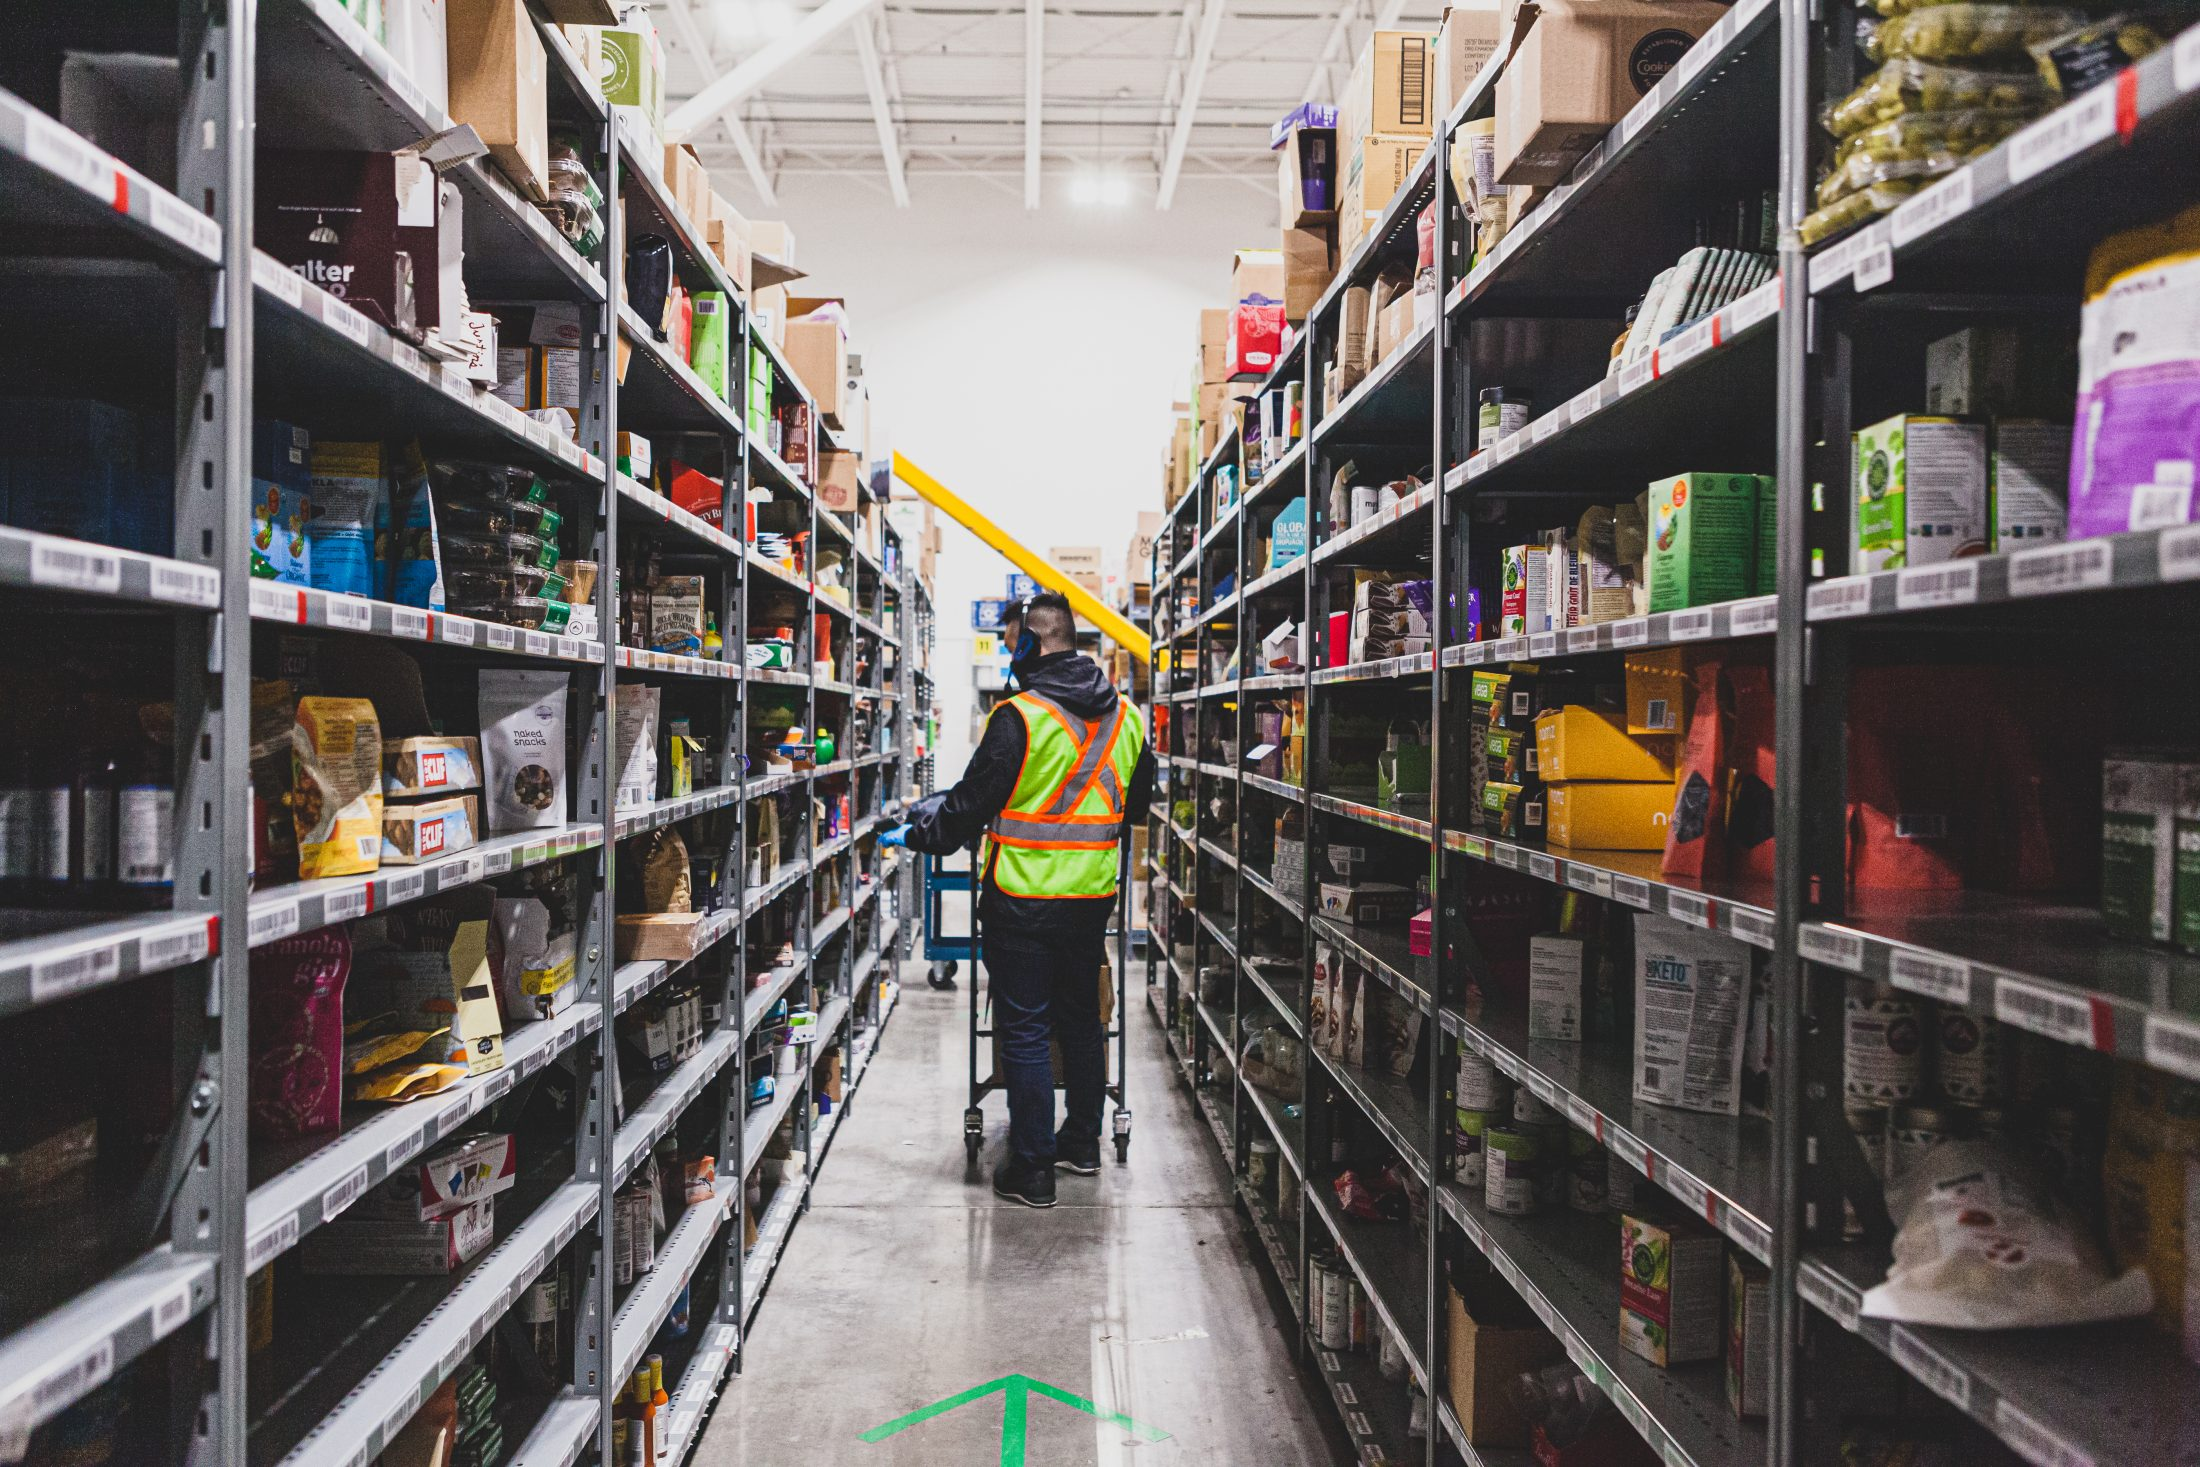 SPUD Warehouse worker in the aisle